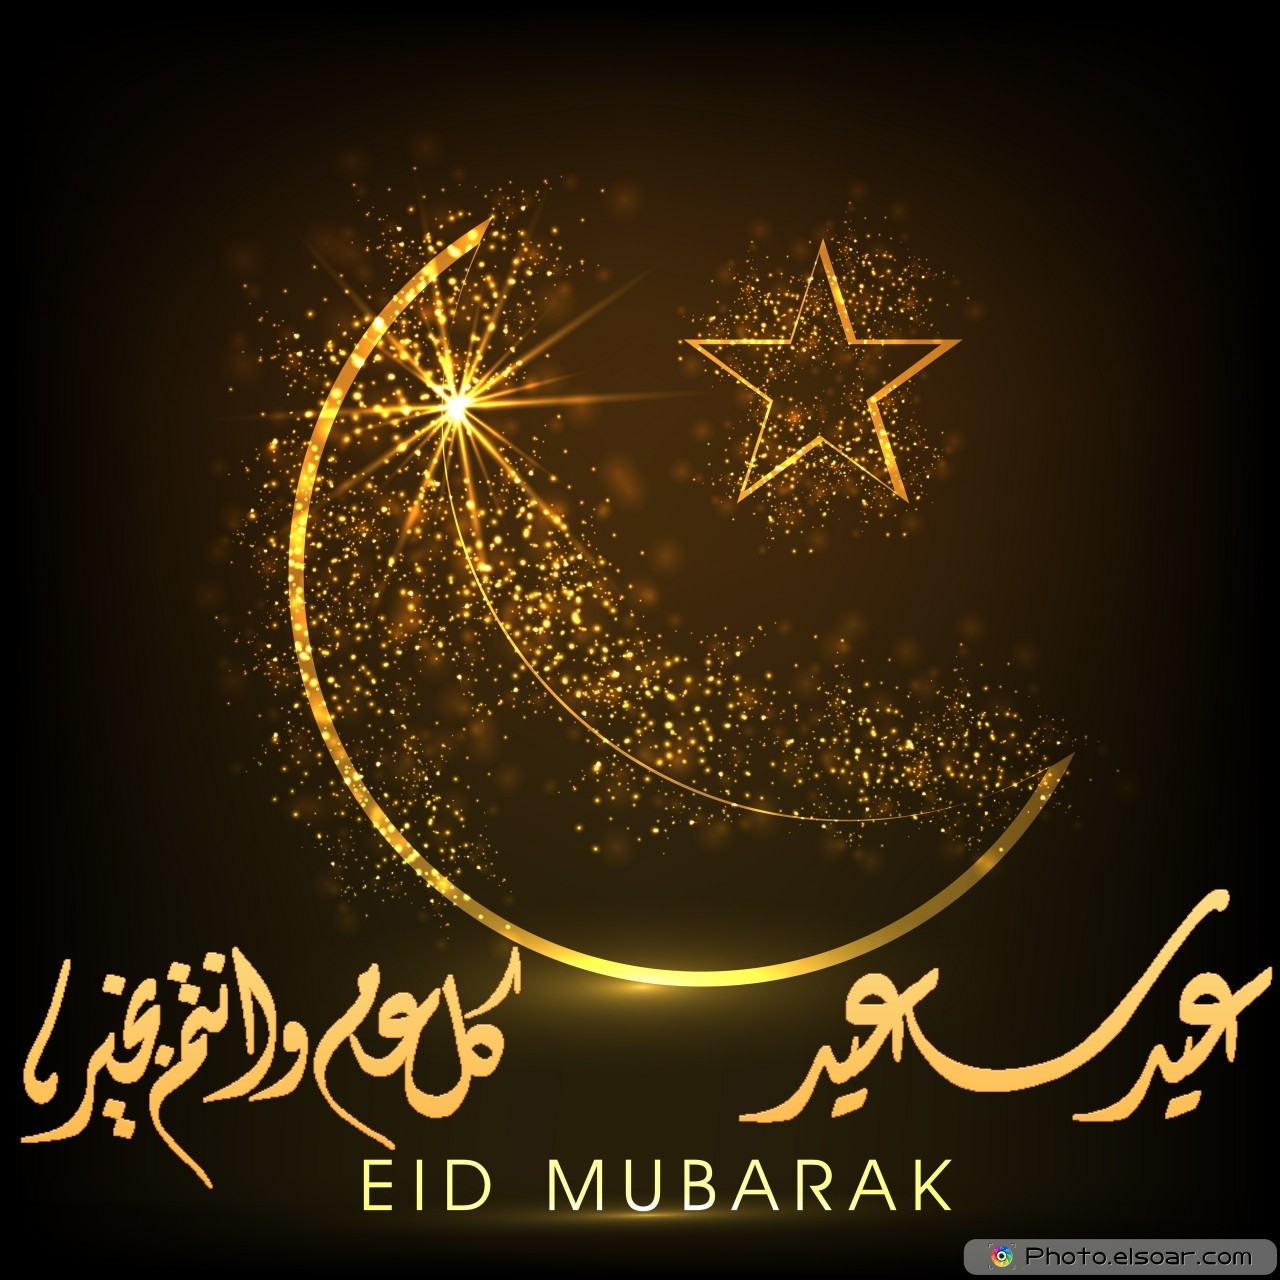 Shiny moon and star with text Eid Mubarak